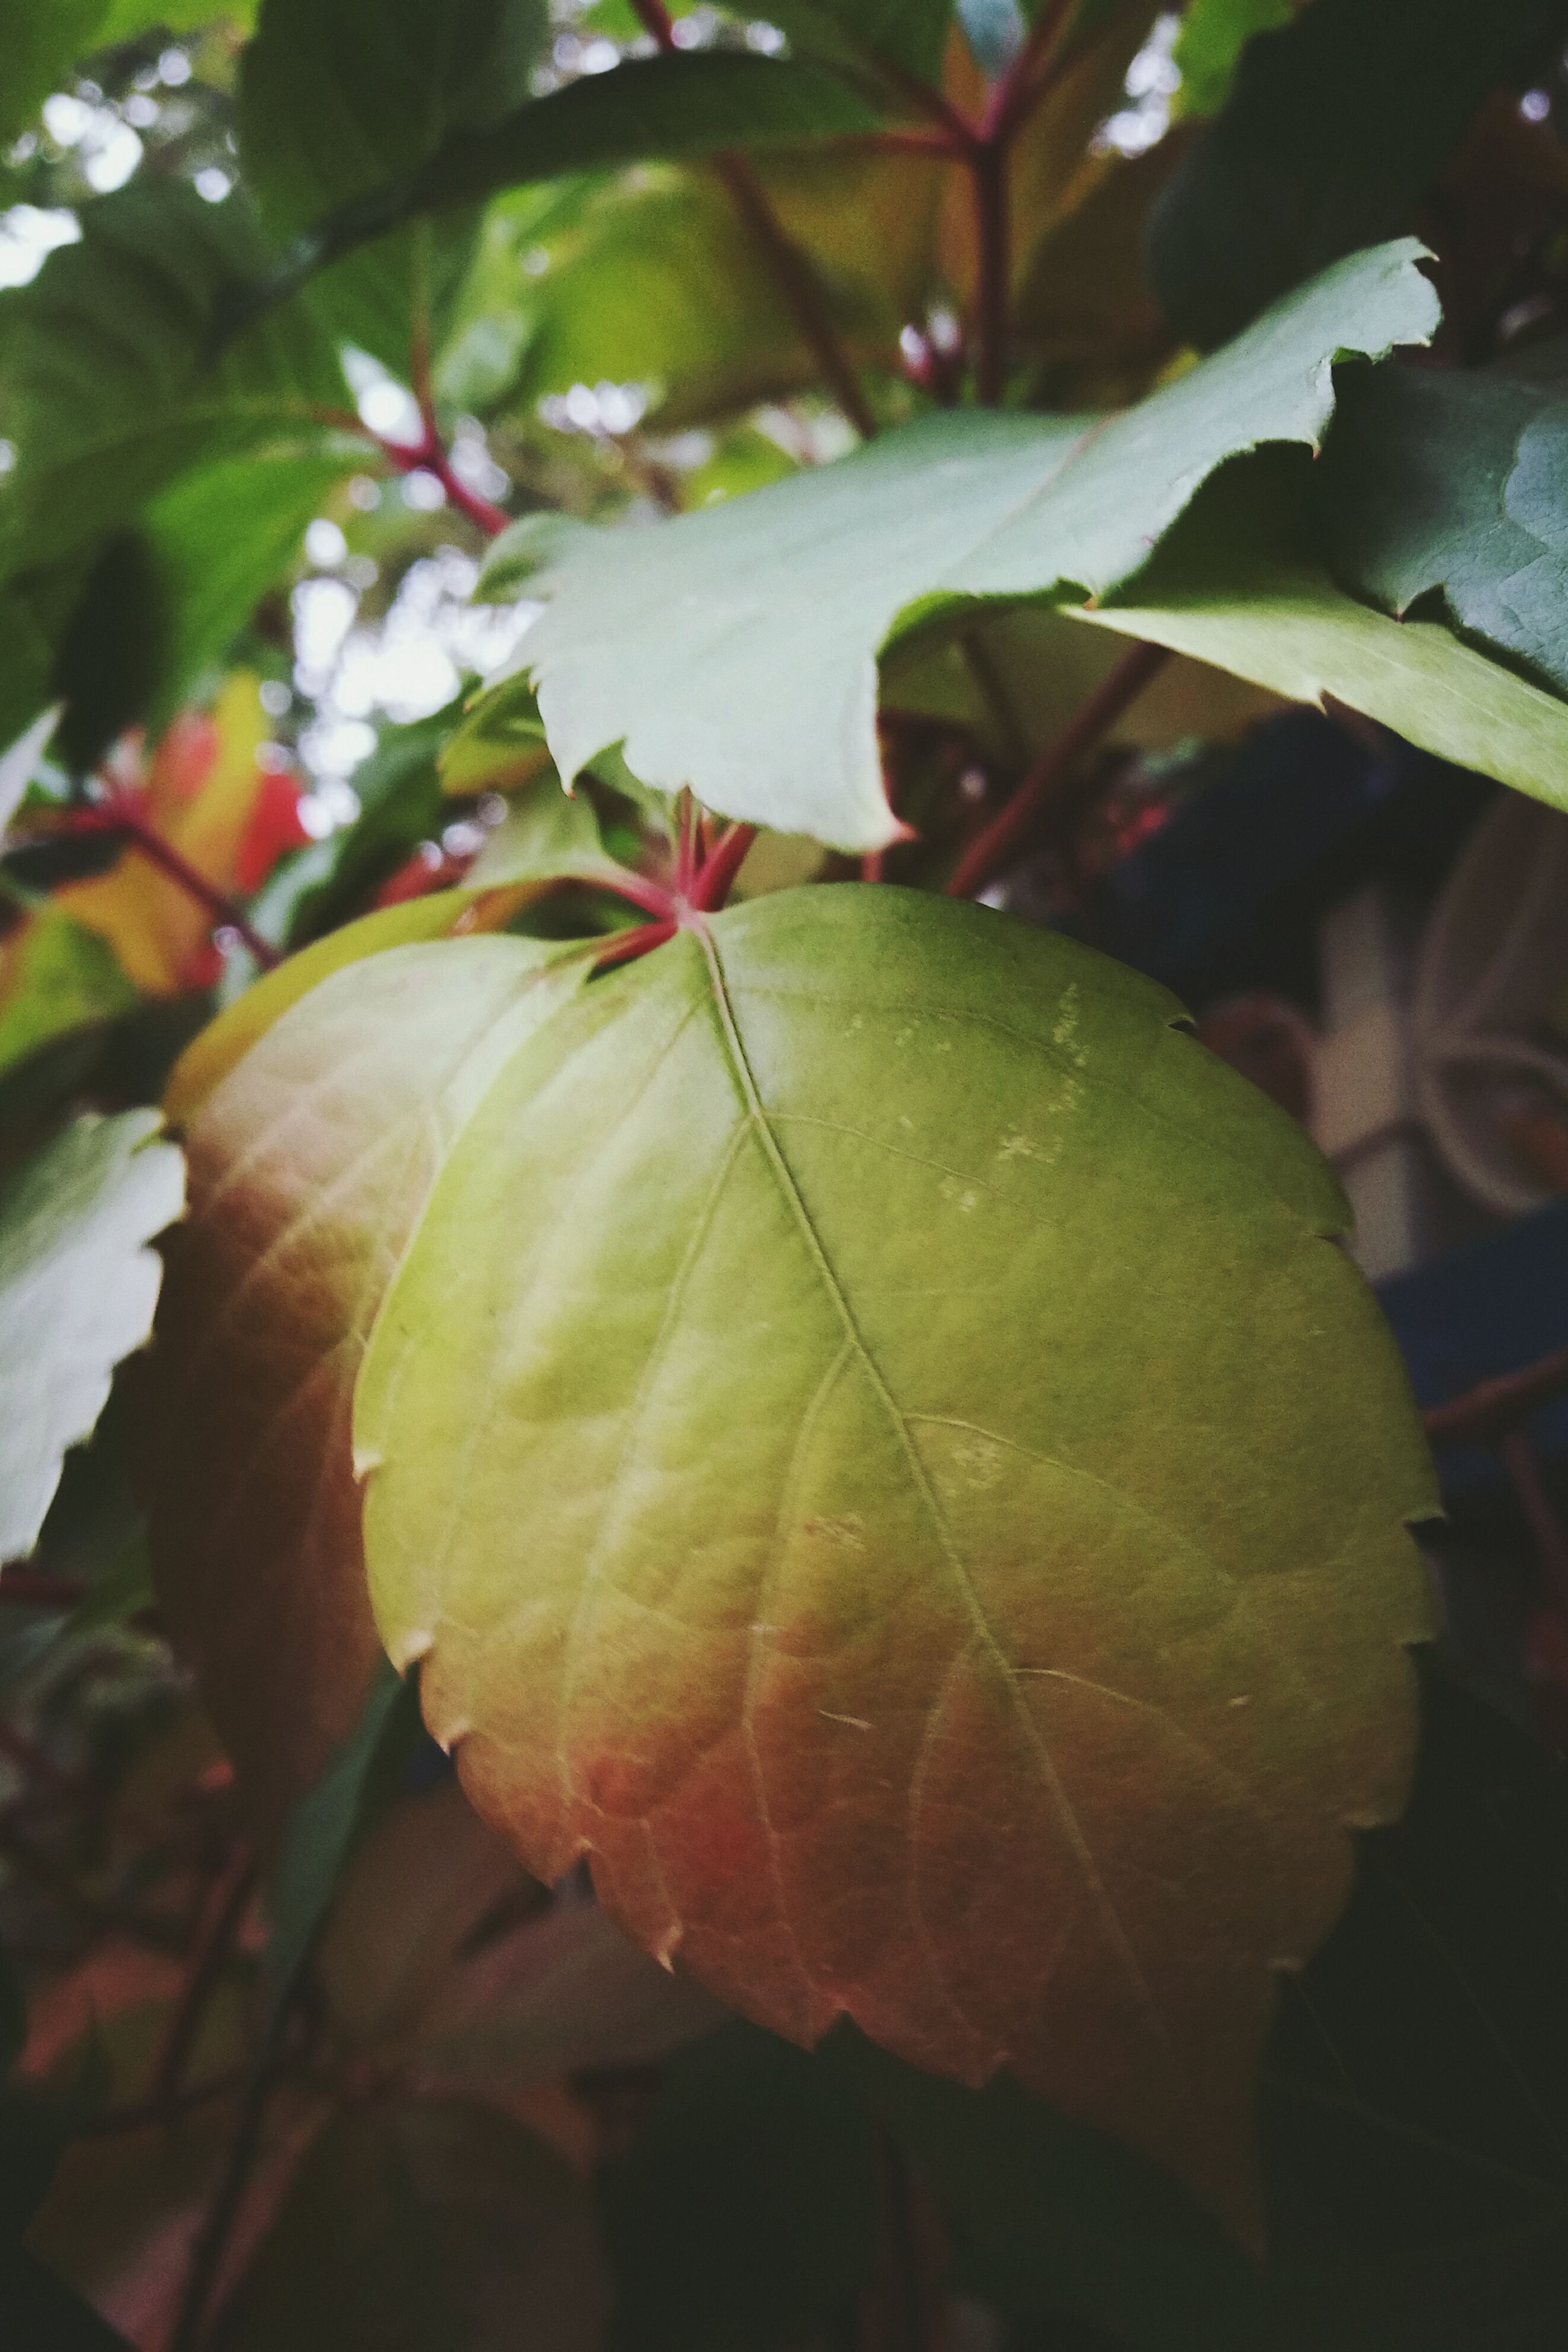 leaf, growth, close-up, leaf vein, nature, beauty in nature, focus on foreground, leaves, green color, day, outdoors, botany, fragility, green, freshness